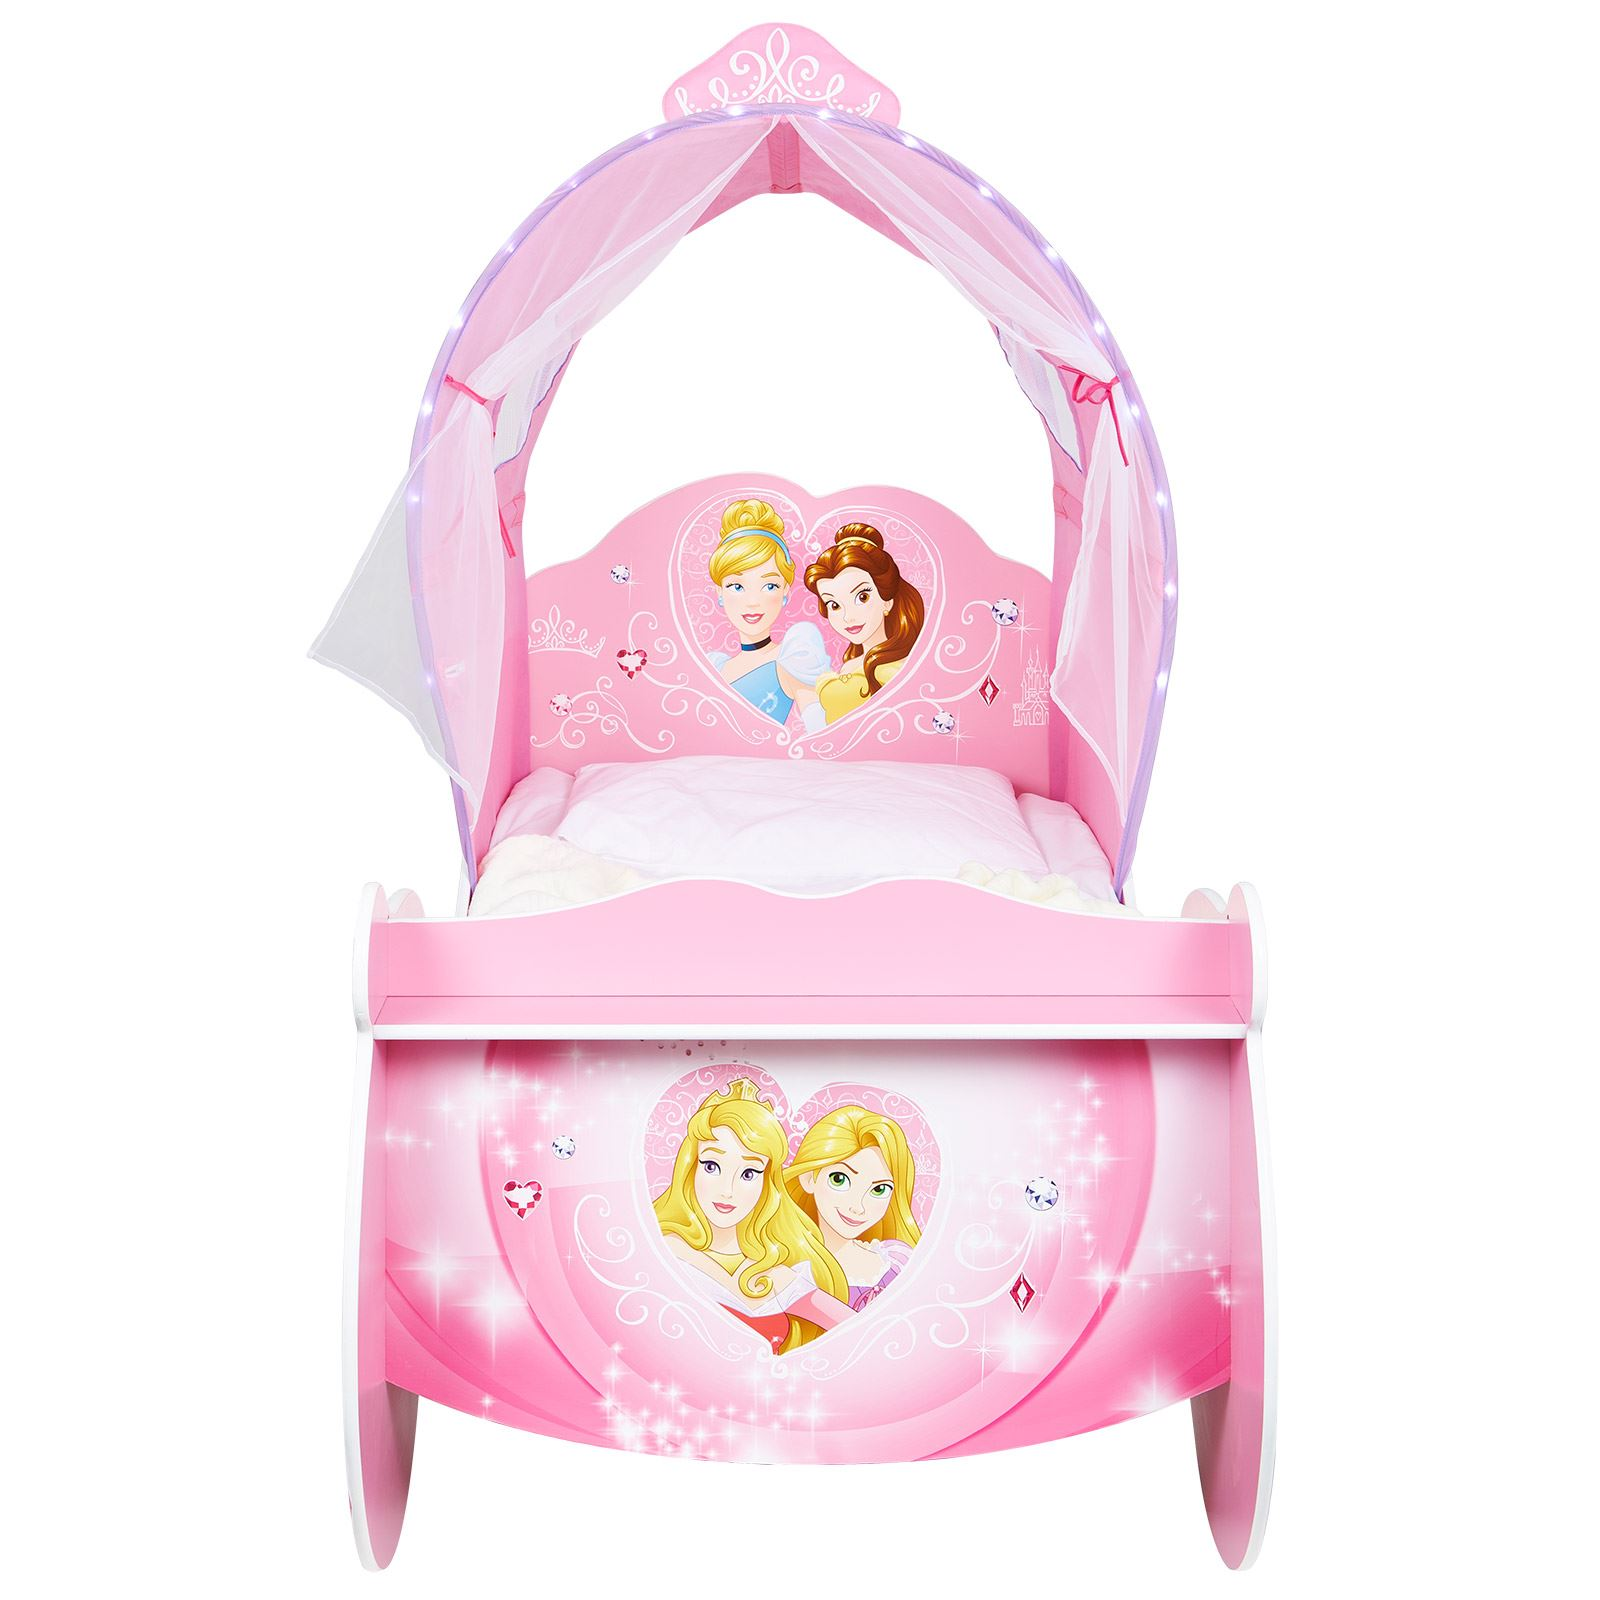 Superior DISNEY PRINCESS CARRIAGE FEATURE TODDLER BED WITH PROTECTIVE SIDE GUARD  FREE P+P Great Pictures